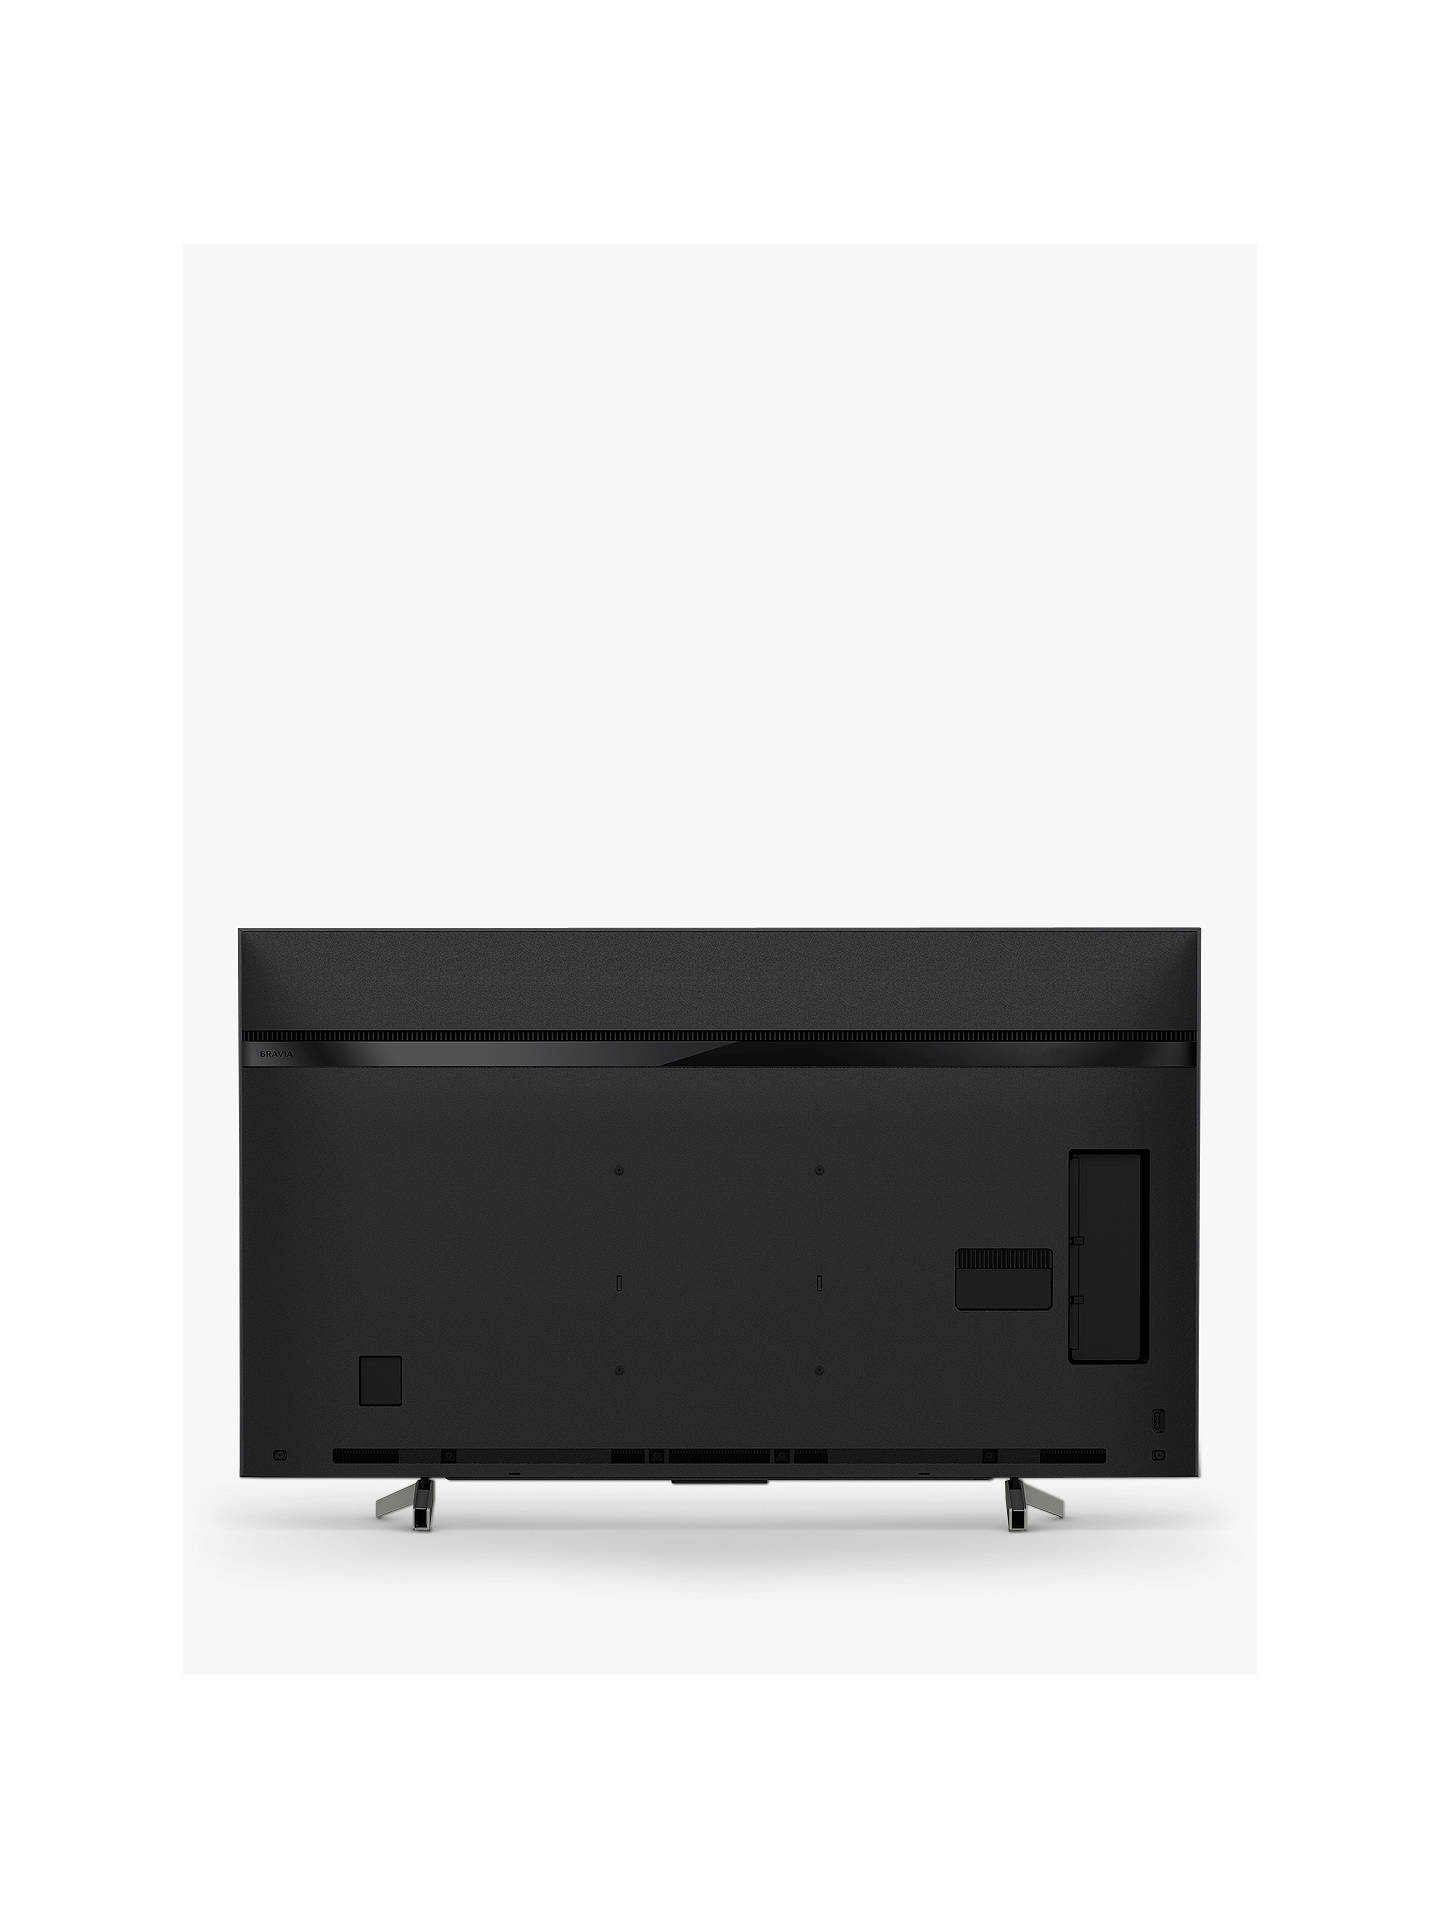 Sony Bravia KD75XG8505 (2019) LED HDR 4K Ultra HD Smart Android TV, 75